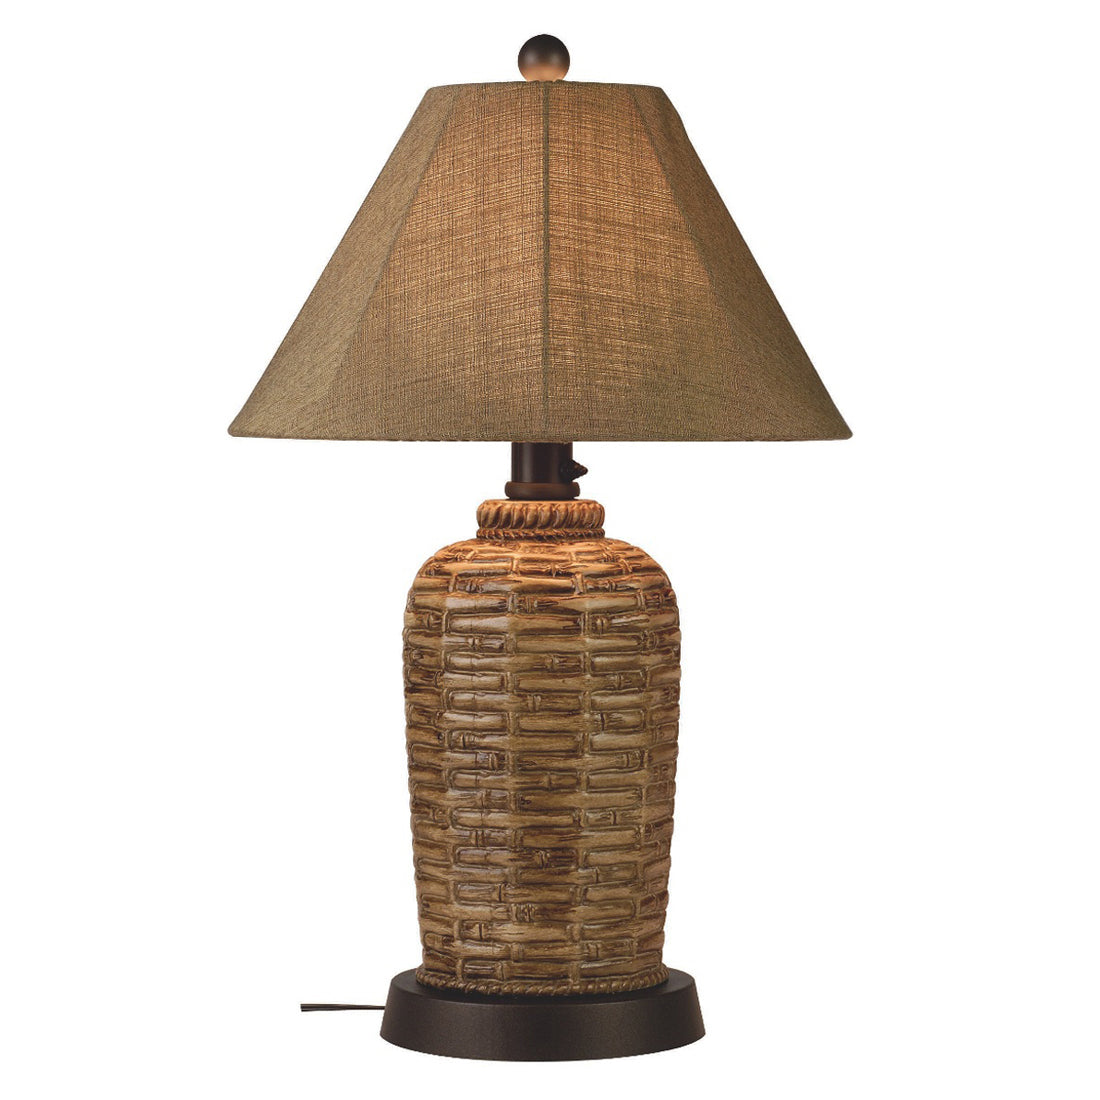 South Pacific Outdoor Table Lamp 45933 with Sesame Sunbrella Shade